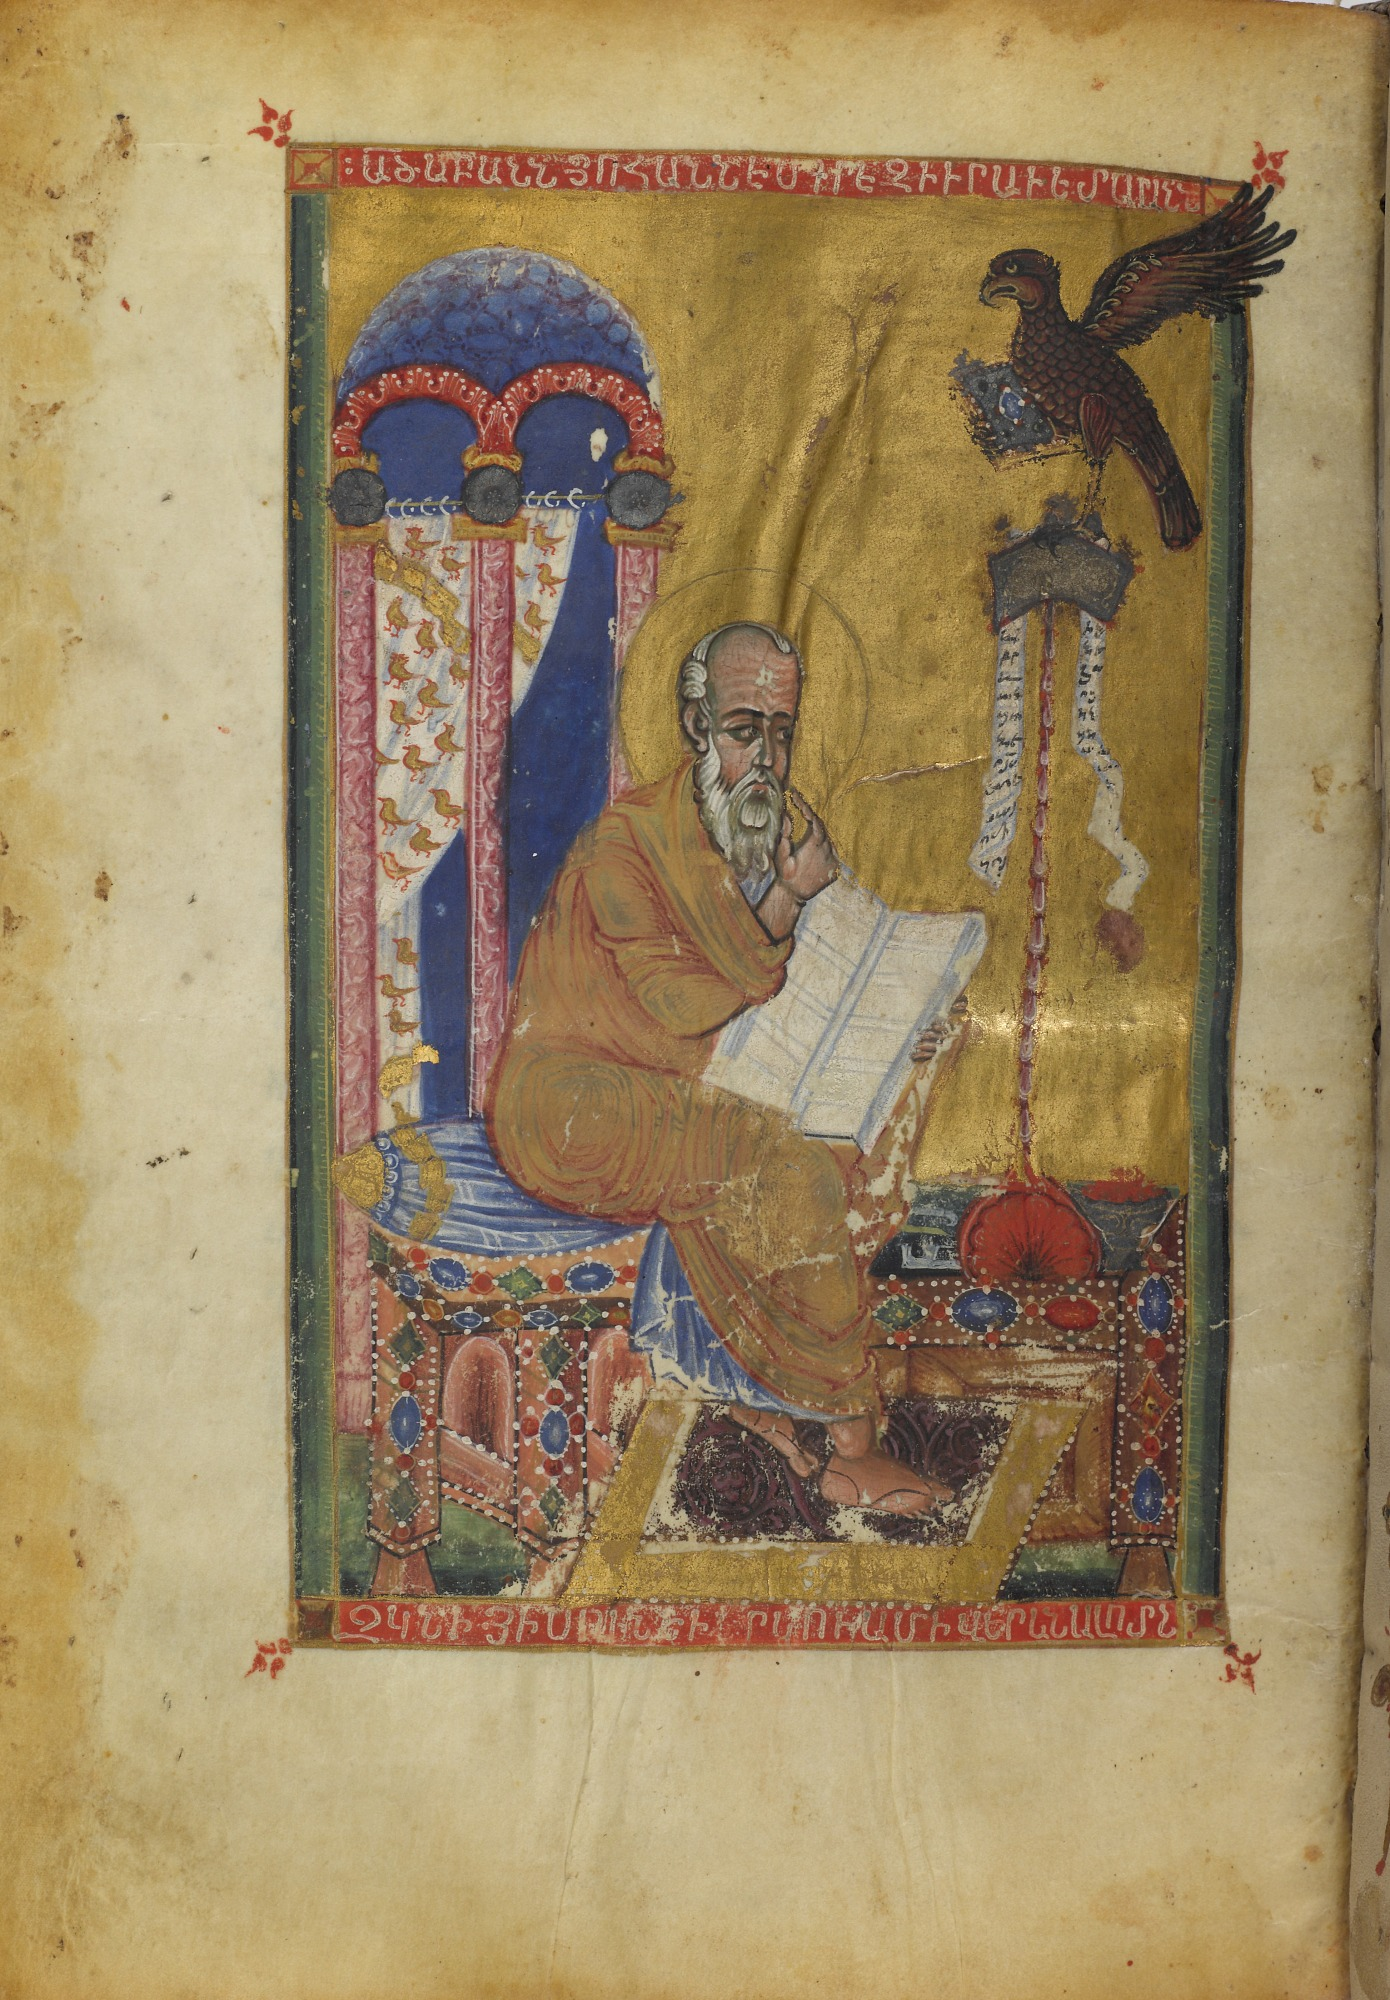 folio 224 verso: Portrait of Mark in a Gospel According to the Four Evangelists